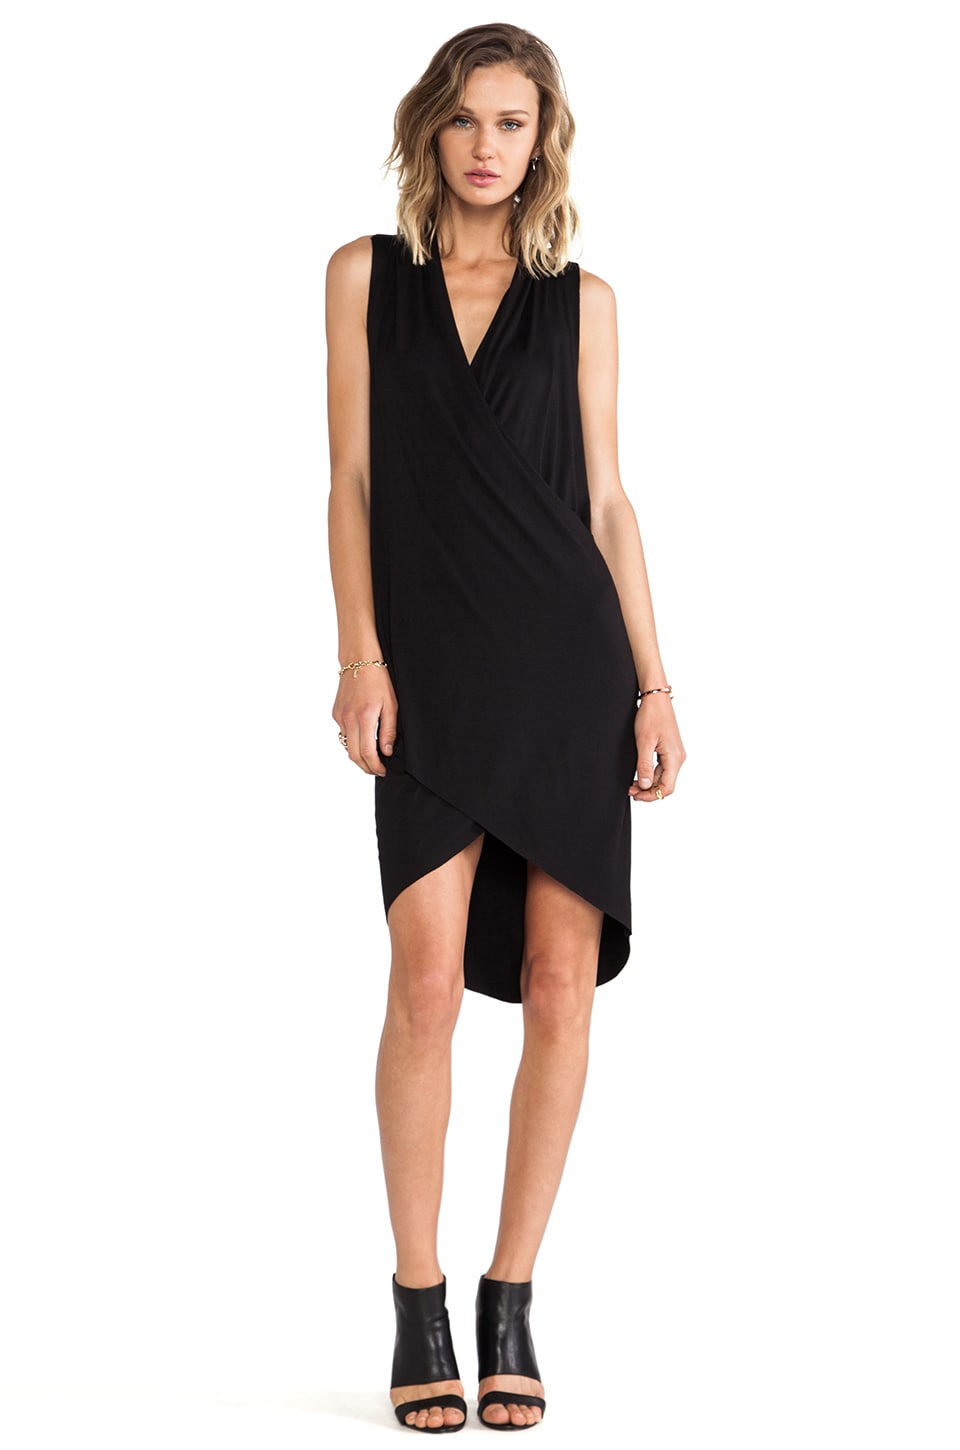 Saint Grace Ida Dress in Black